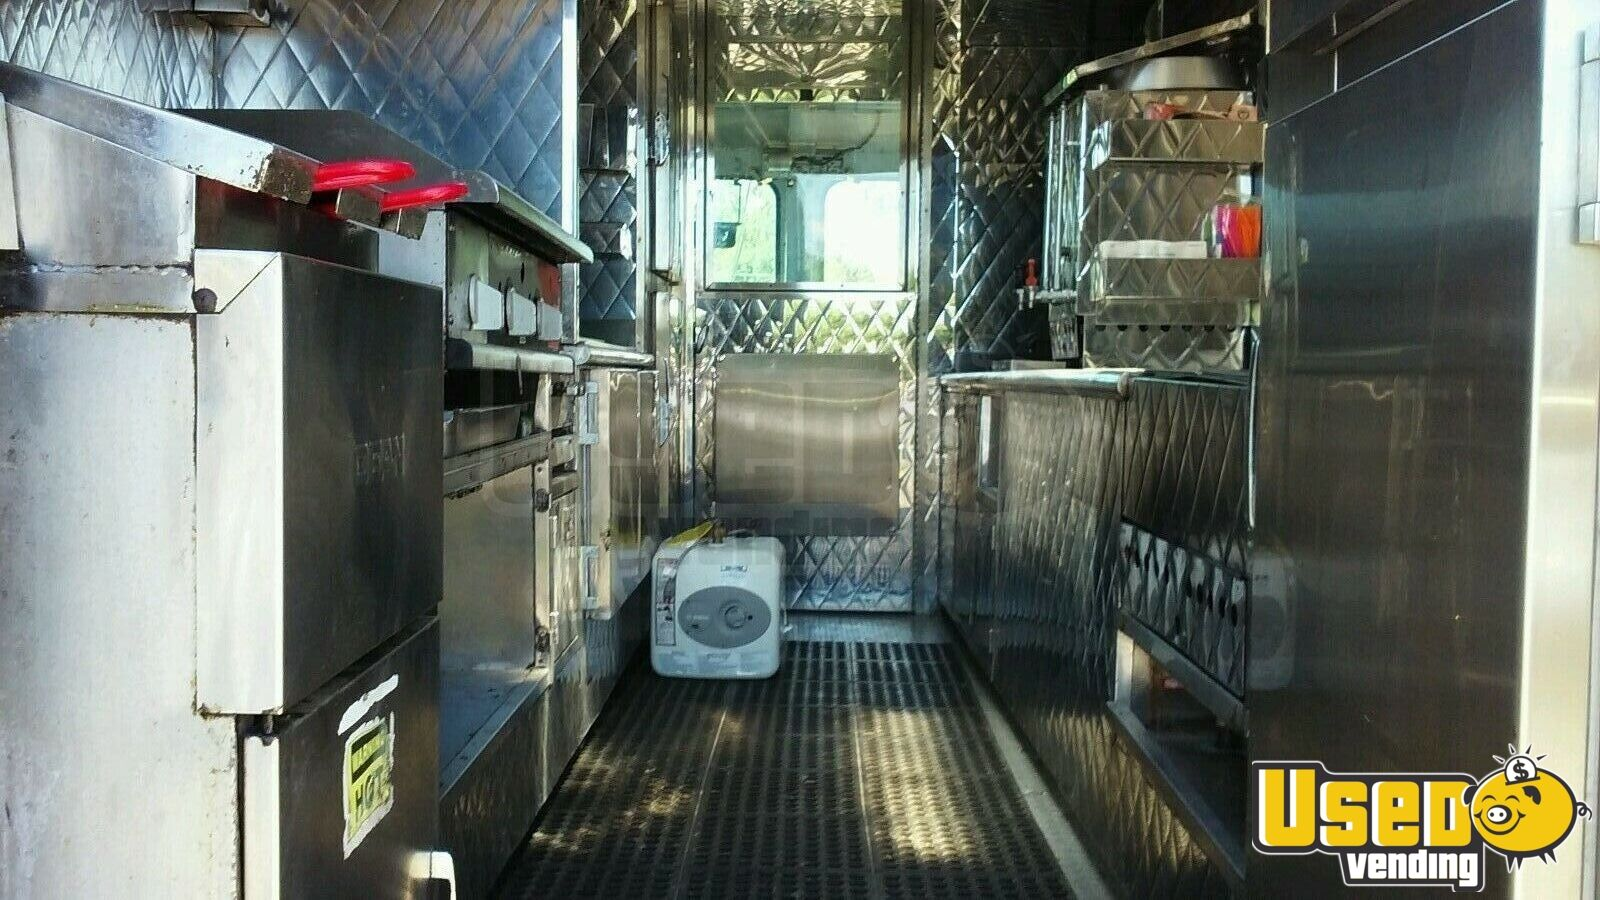 1981 Chevrolet 350 All-purpose Food Truck Stainless Steel Wall Covers New Jersey for Sale - 3